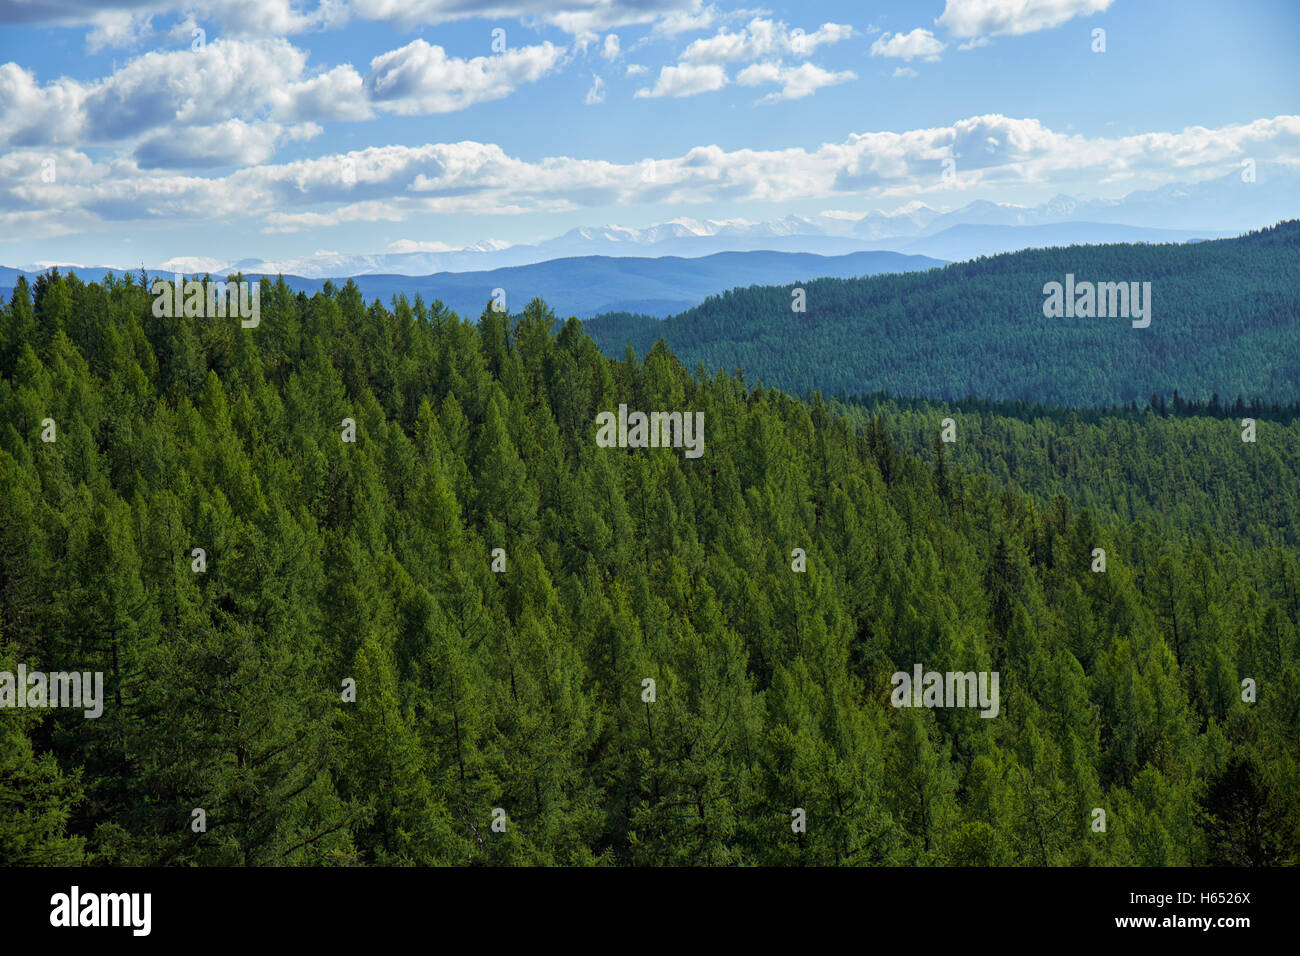 Altai mountains forest landscape in Ulagan Highlands. Siberia, Russia - Stock Image